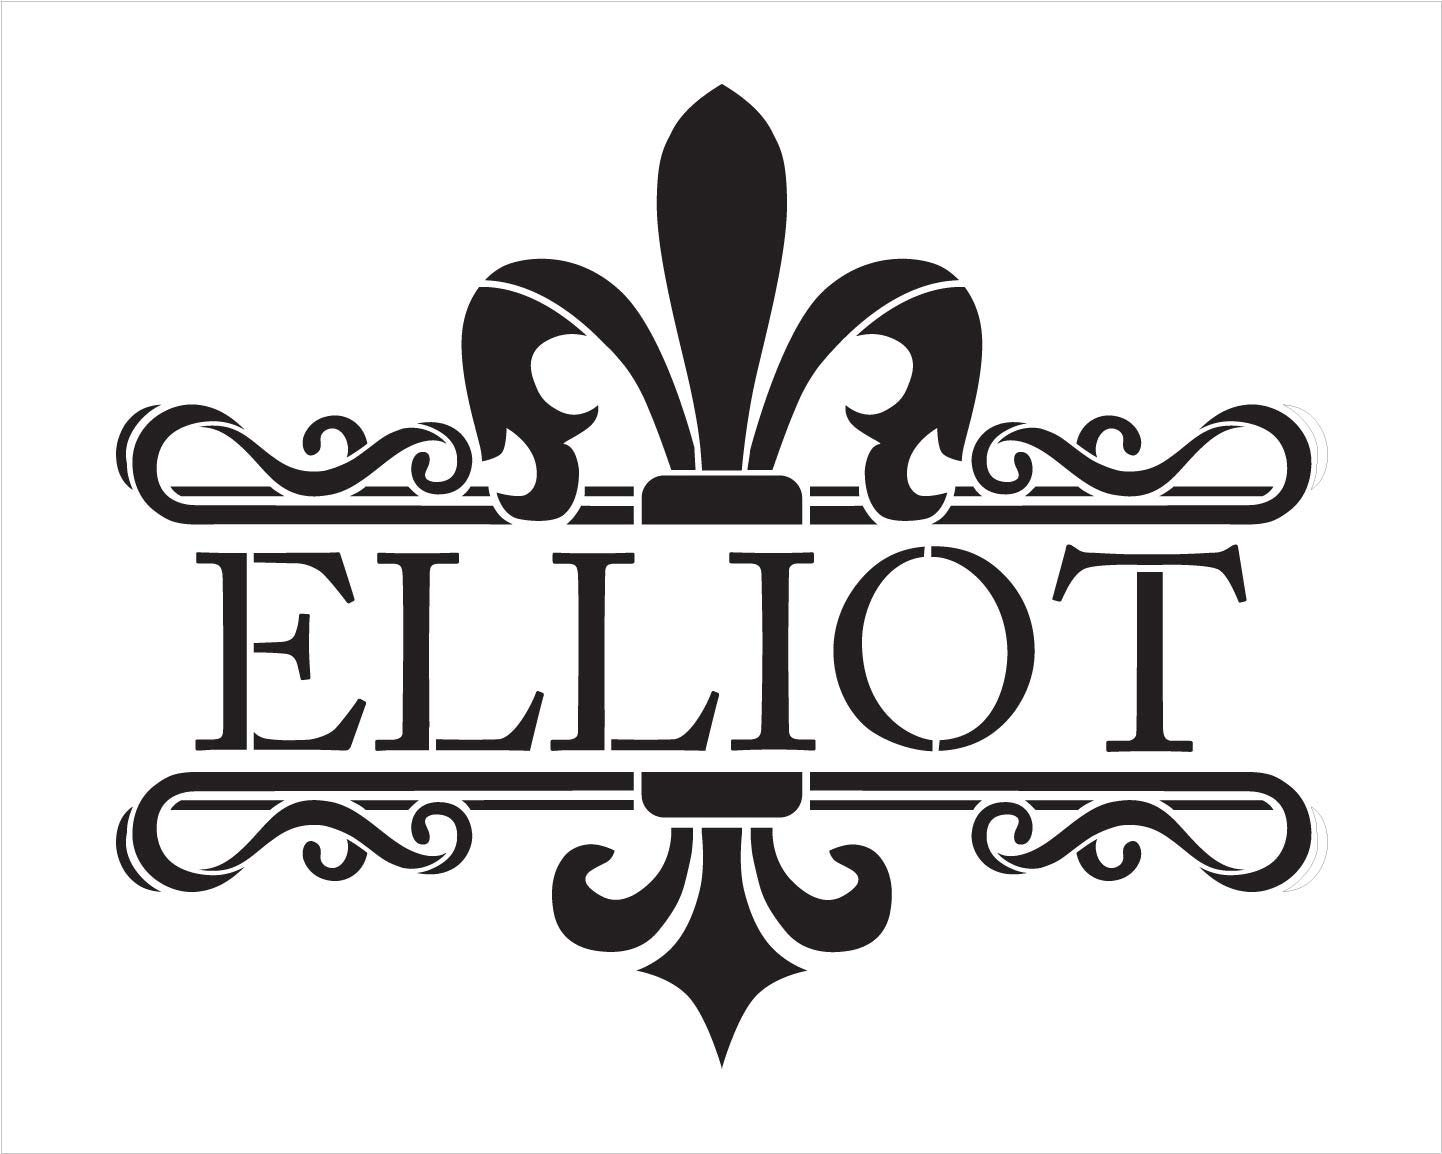 Personalized Fleur de lis Family Stencil | Custom Last Name | DIY Rustic Country Home Decor | French Farmhouse Entryway Word Art | Craft & Paint Wood Signs | Reusable Mylar Template | Select Size